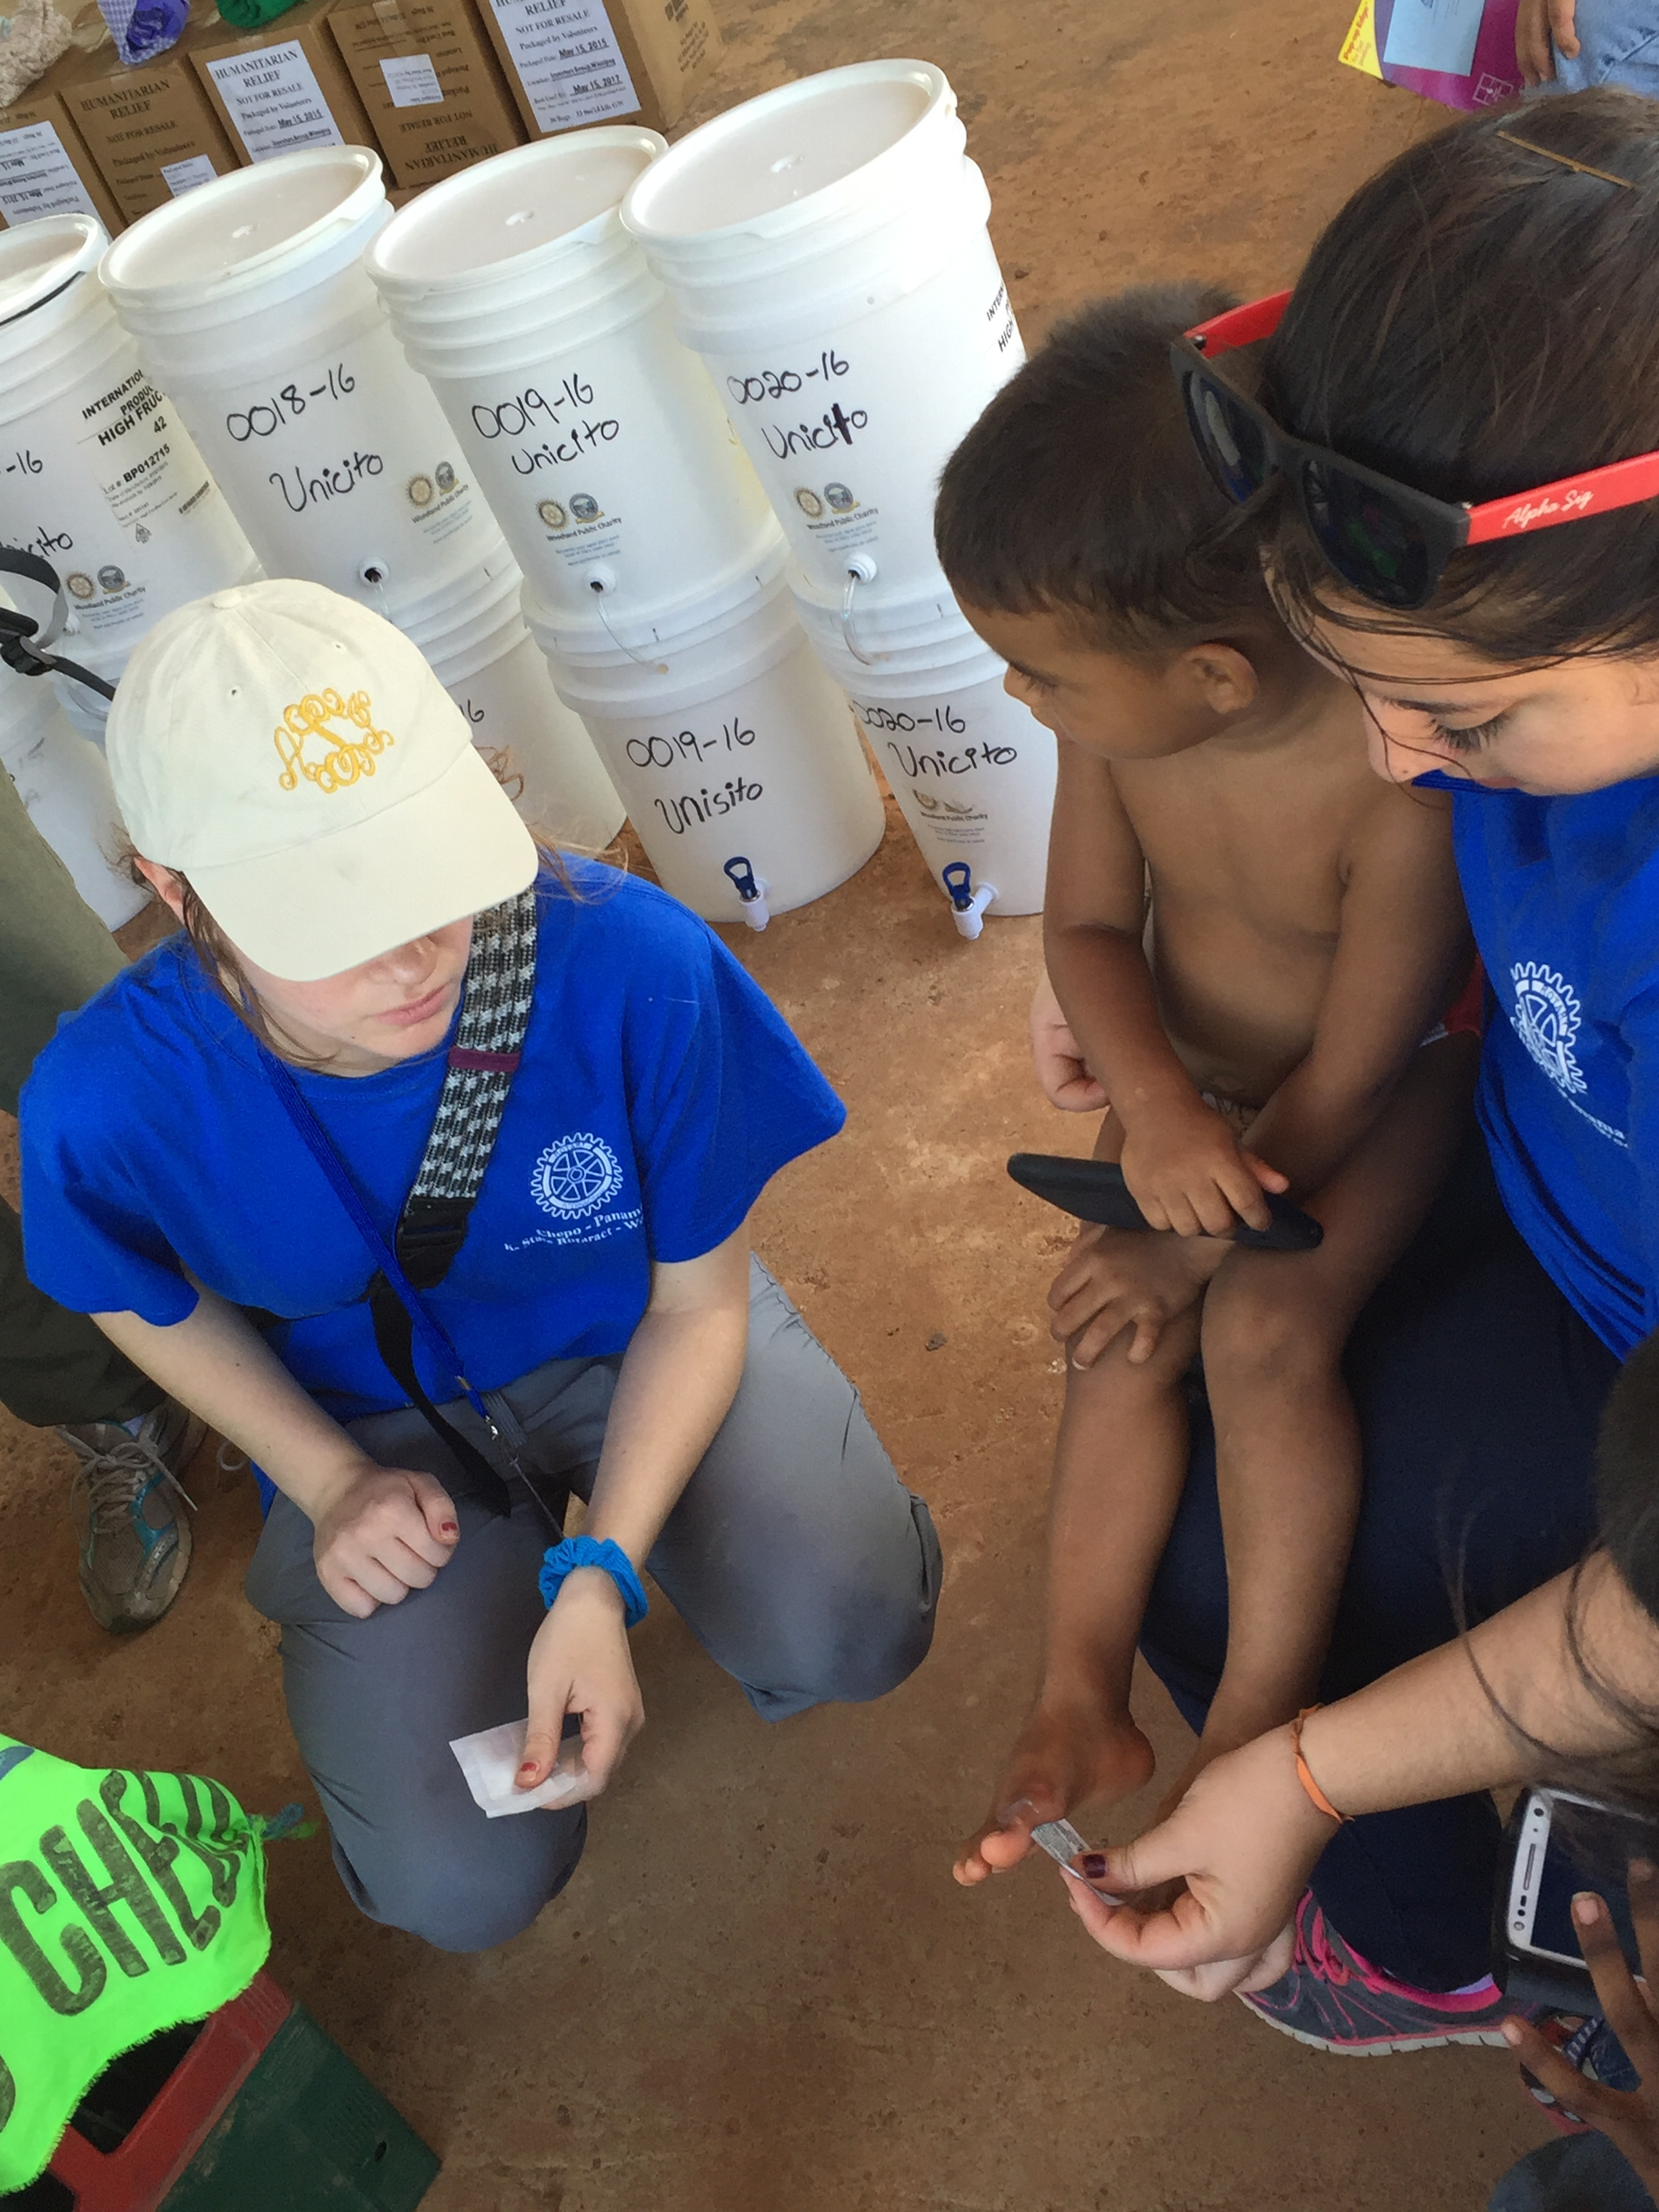 Amanda and Karina (of WPC) clean and bandage a cut on the toe of a young boy walking around without shoes.